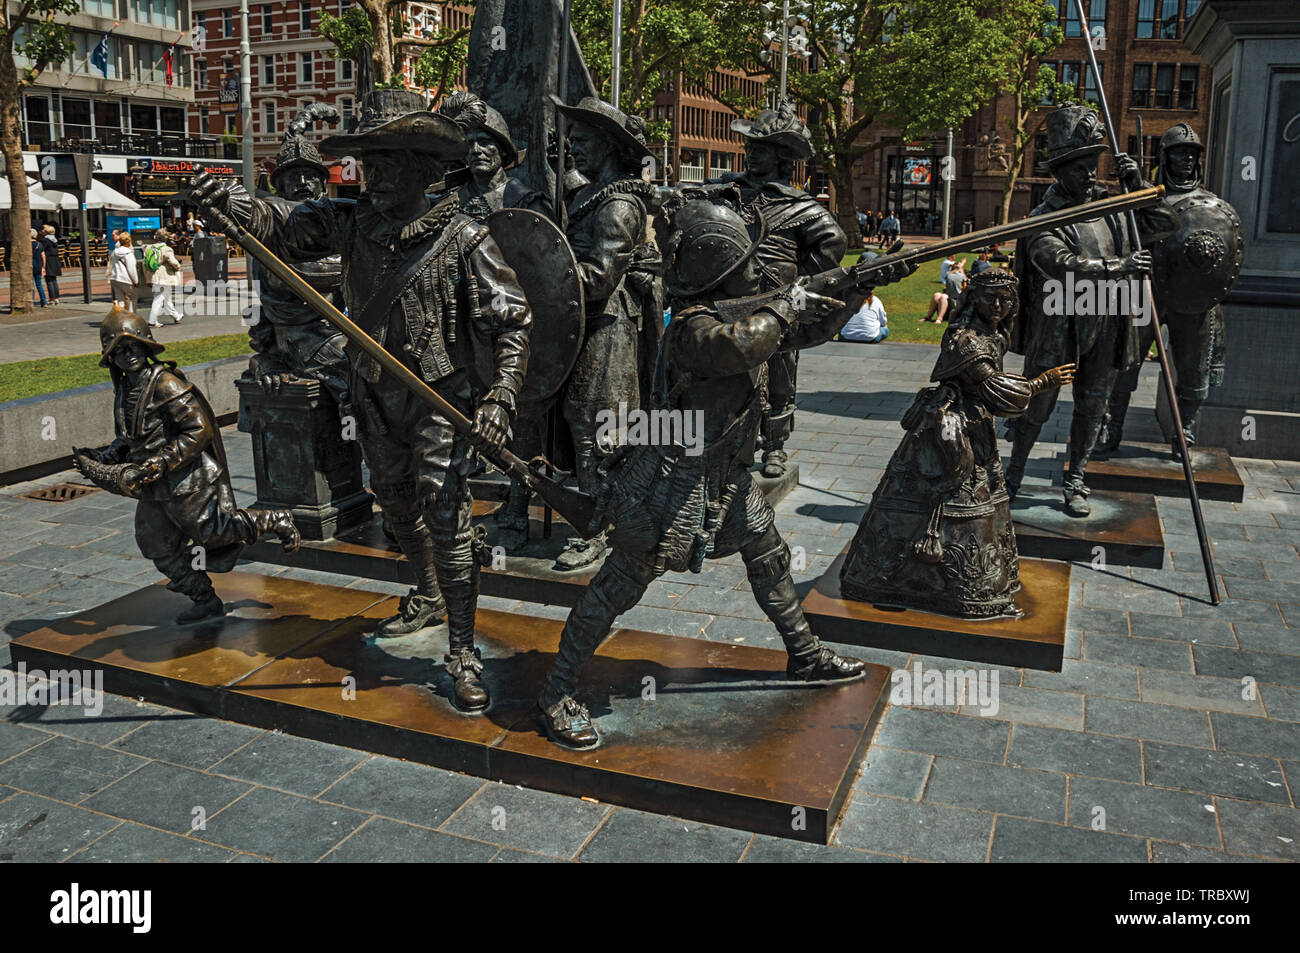 Rembrandt Square with sculptures from the Night Watch picture in Amsterdam. City with huge cultural activity, canals and bridges in Netherlands. Stock Photo